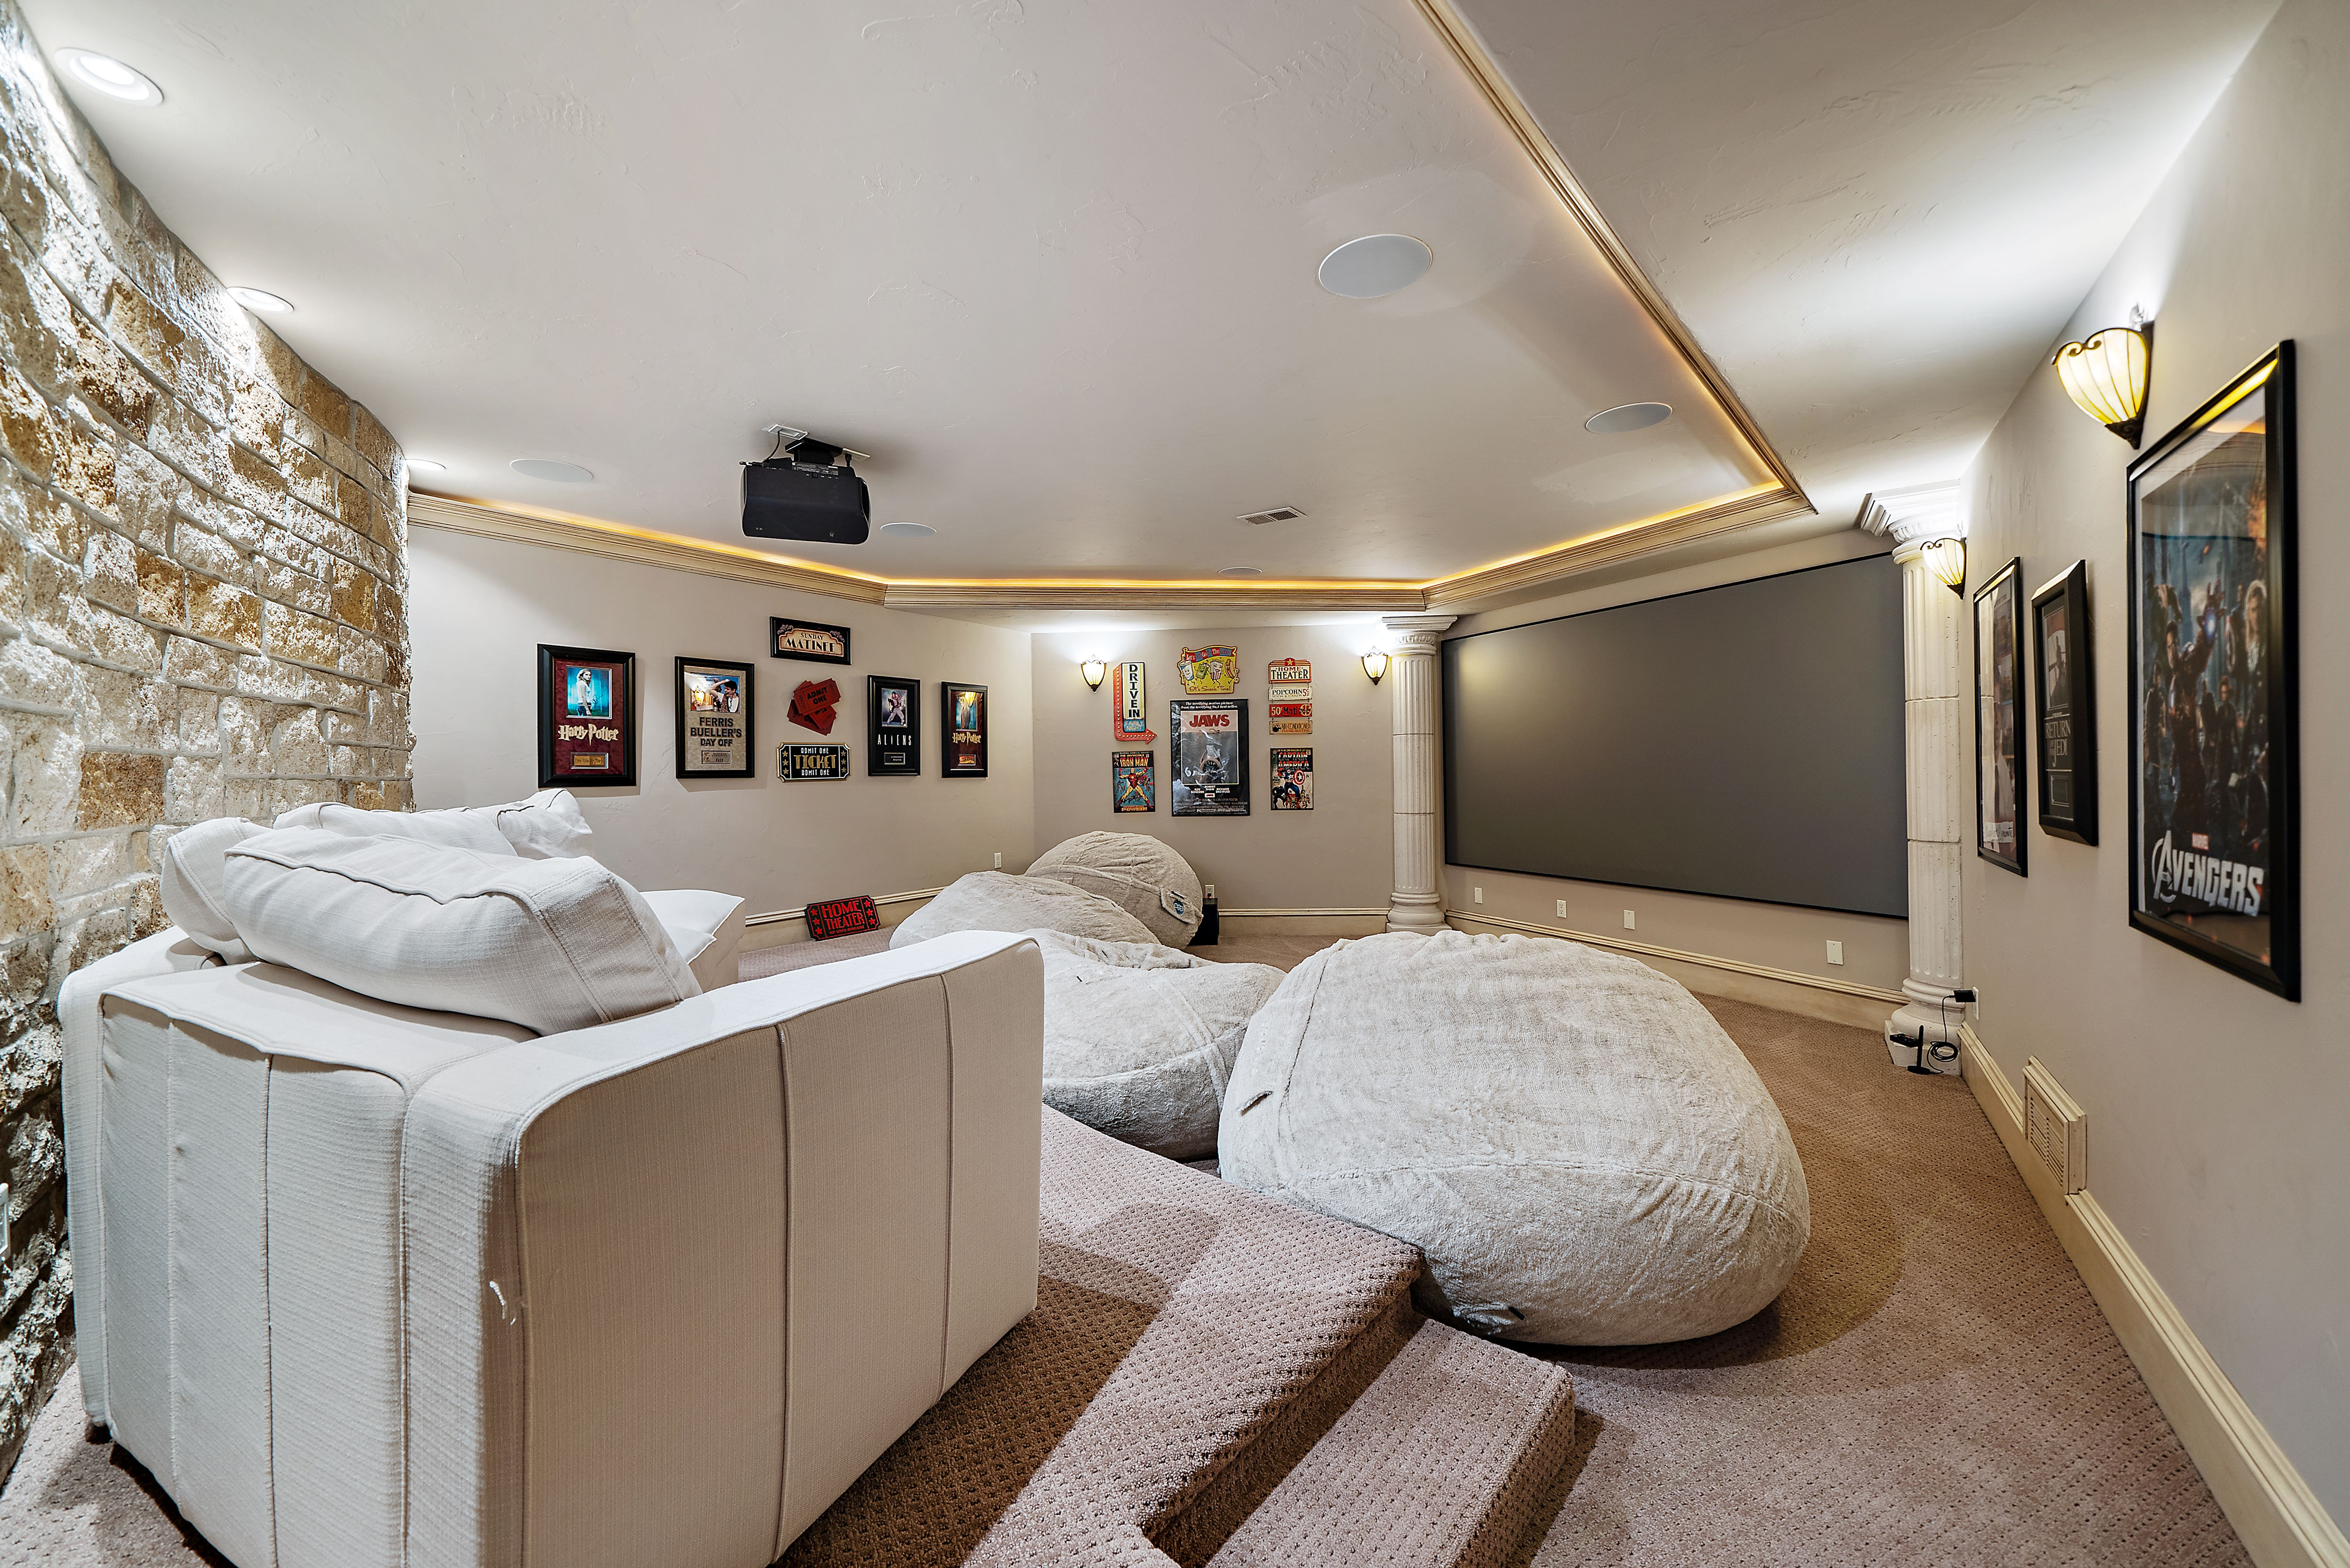 A view of the theater room.